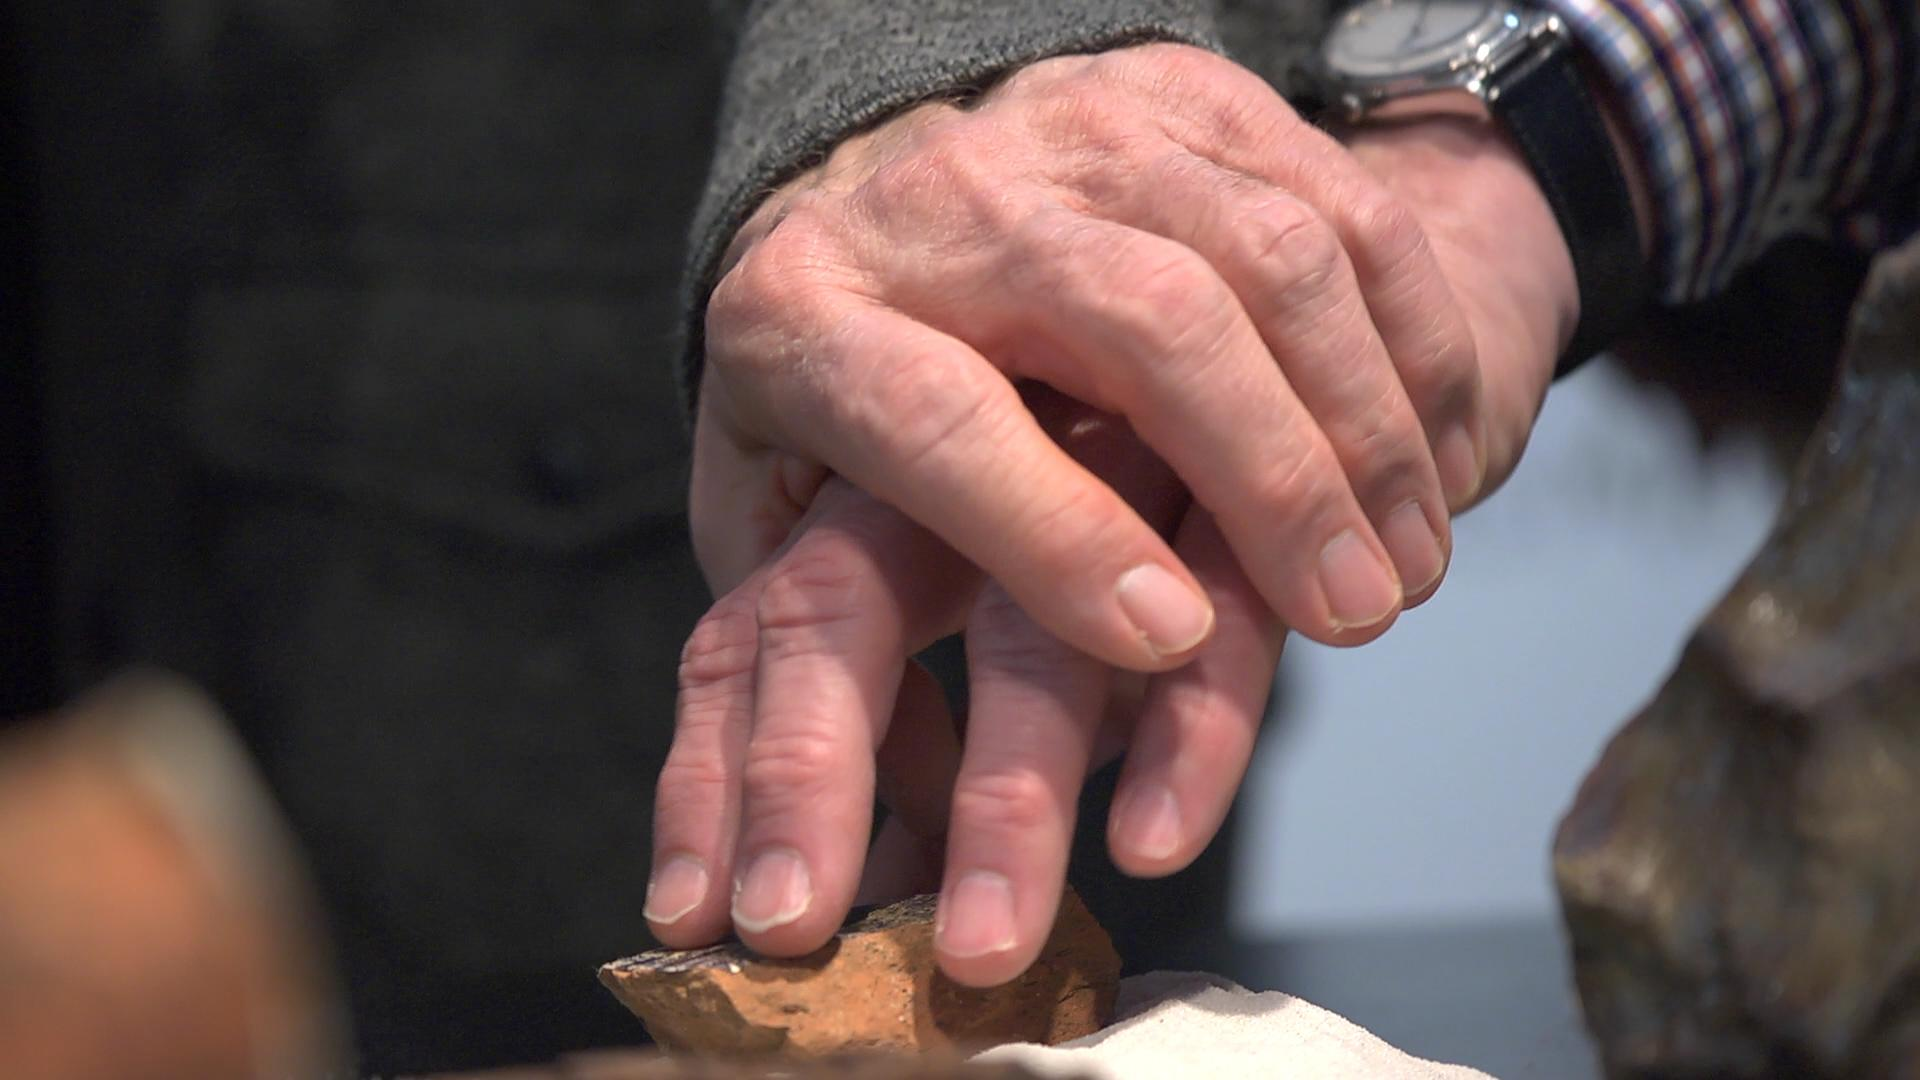 A person holds another person's hand, guiding them to touch the surface of a rock.